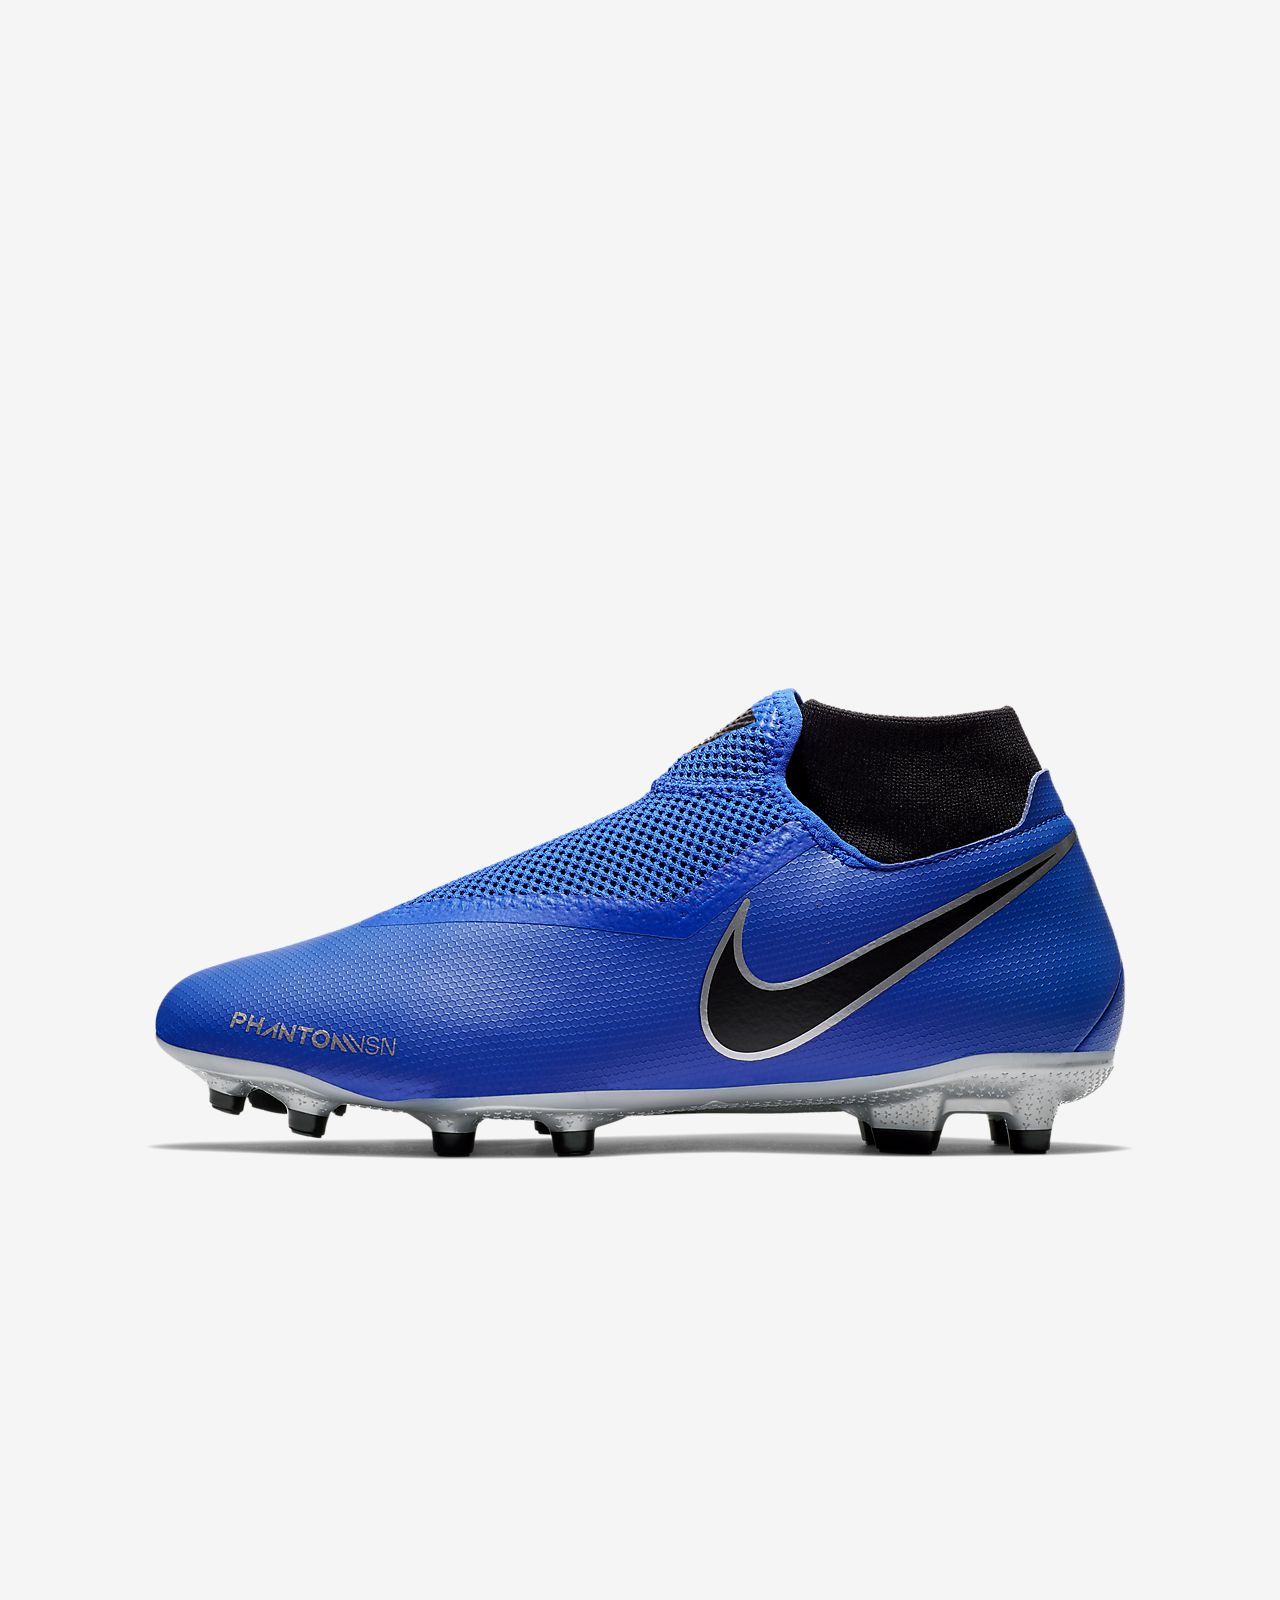 Nike PhantomVSN Academy Dynamic Fit MG Botas de fútbol para múltiples  superficies 3fc81850fe17f